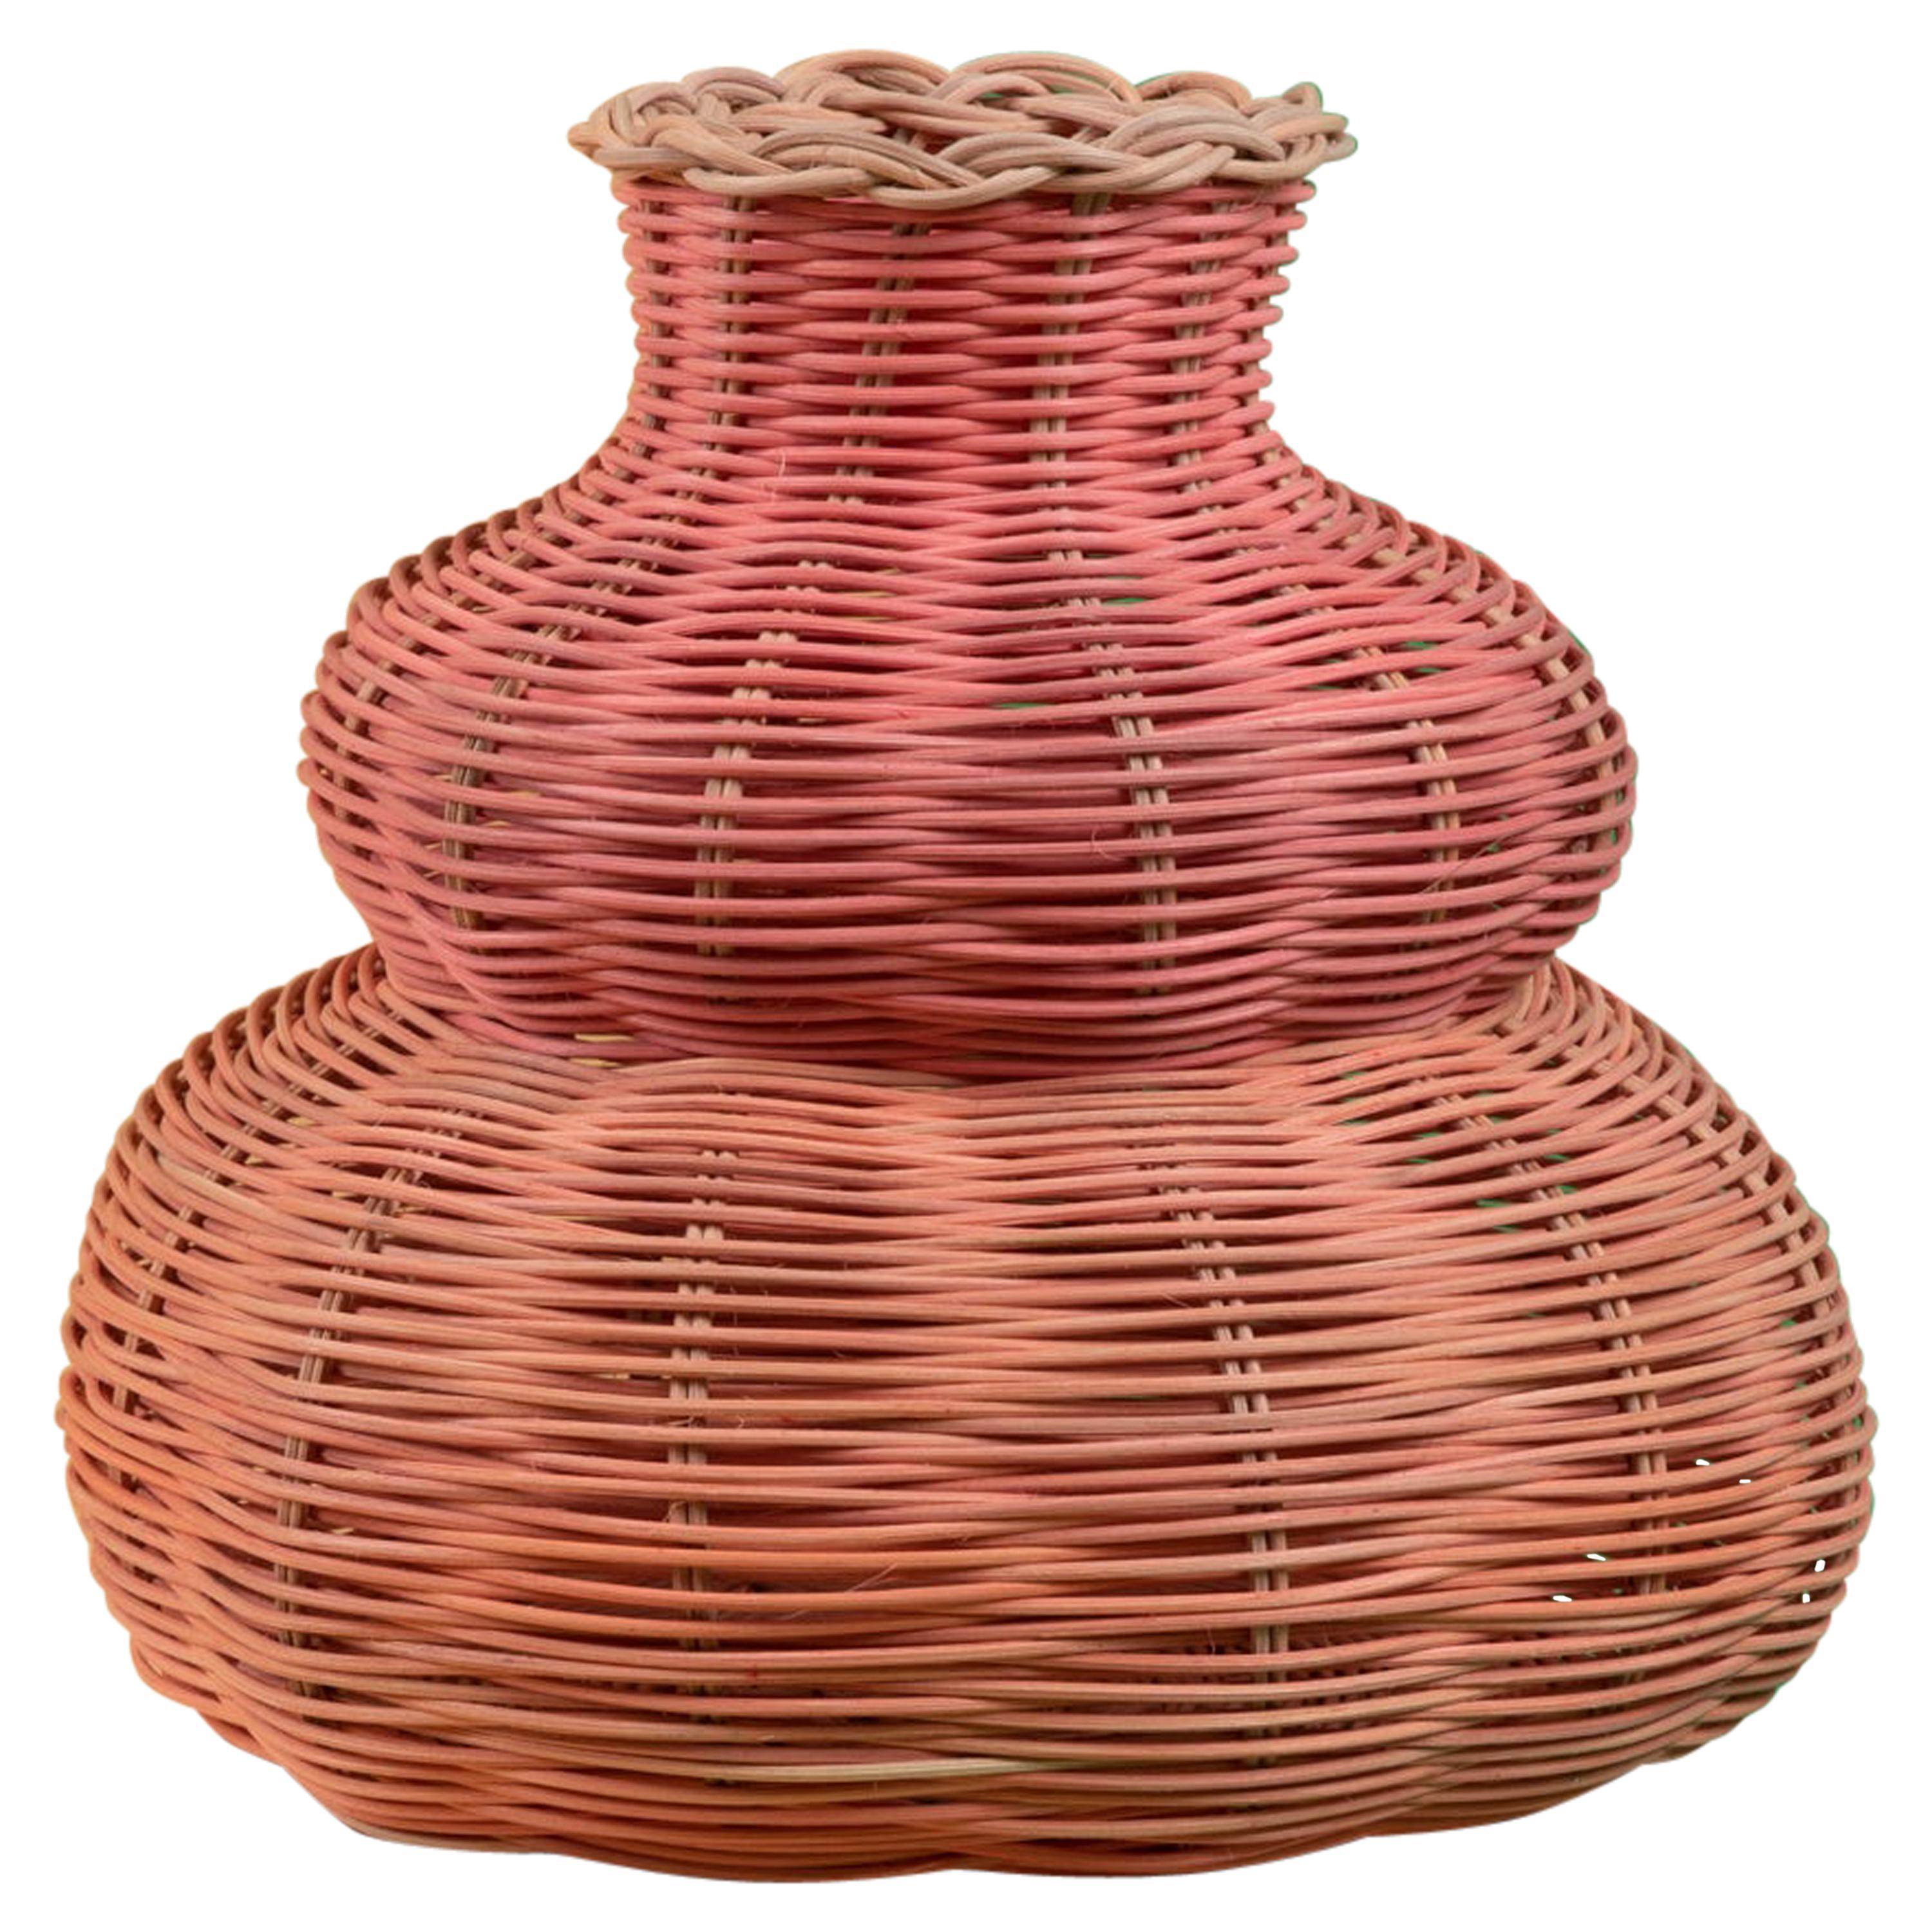 Hillary Woven Vase in Peach and Pink by Studio Herron